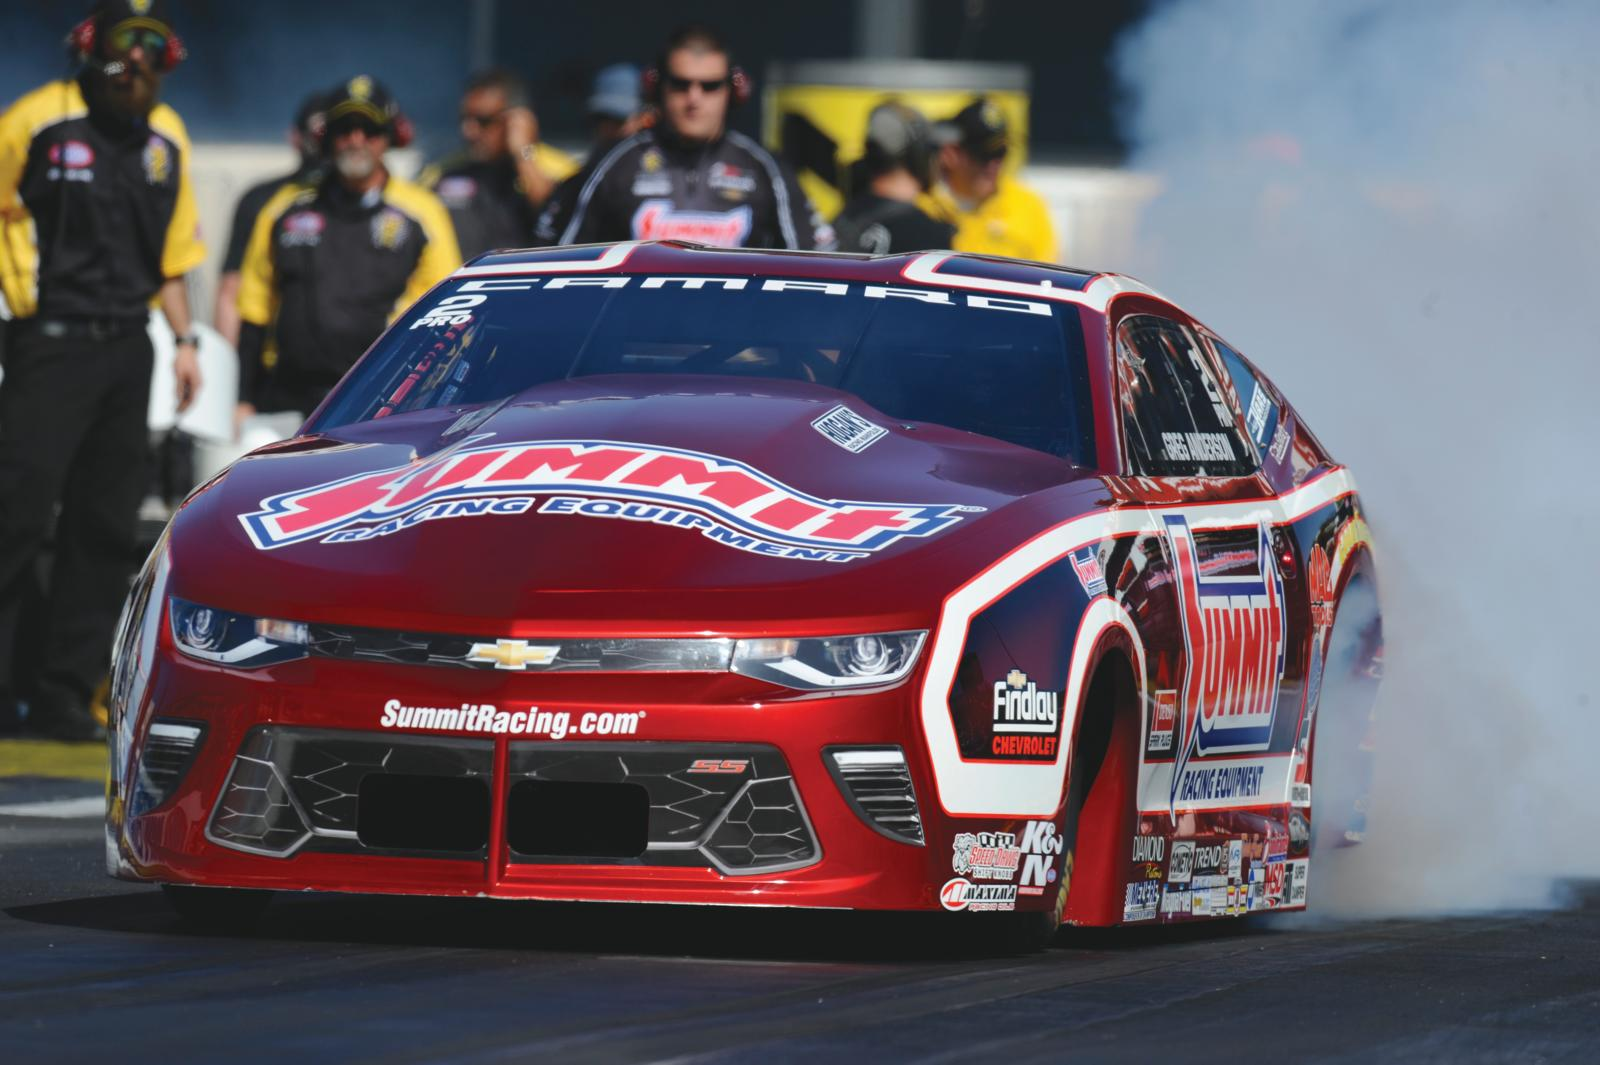 nhra  pro stock class can use any accepted engine  body